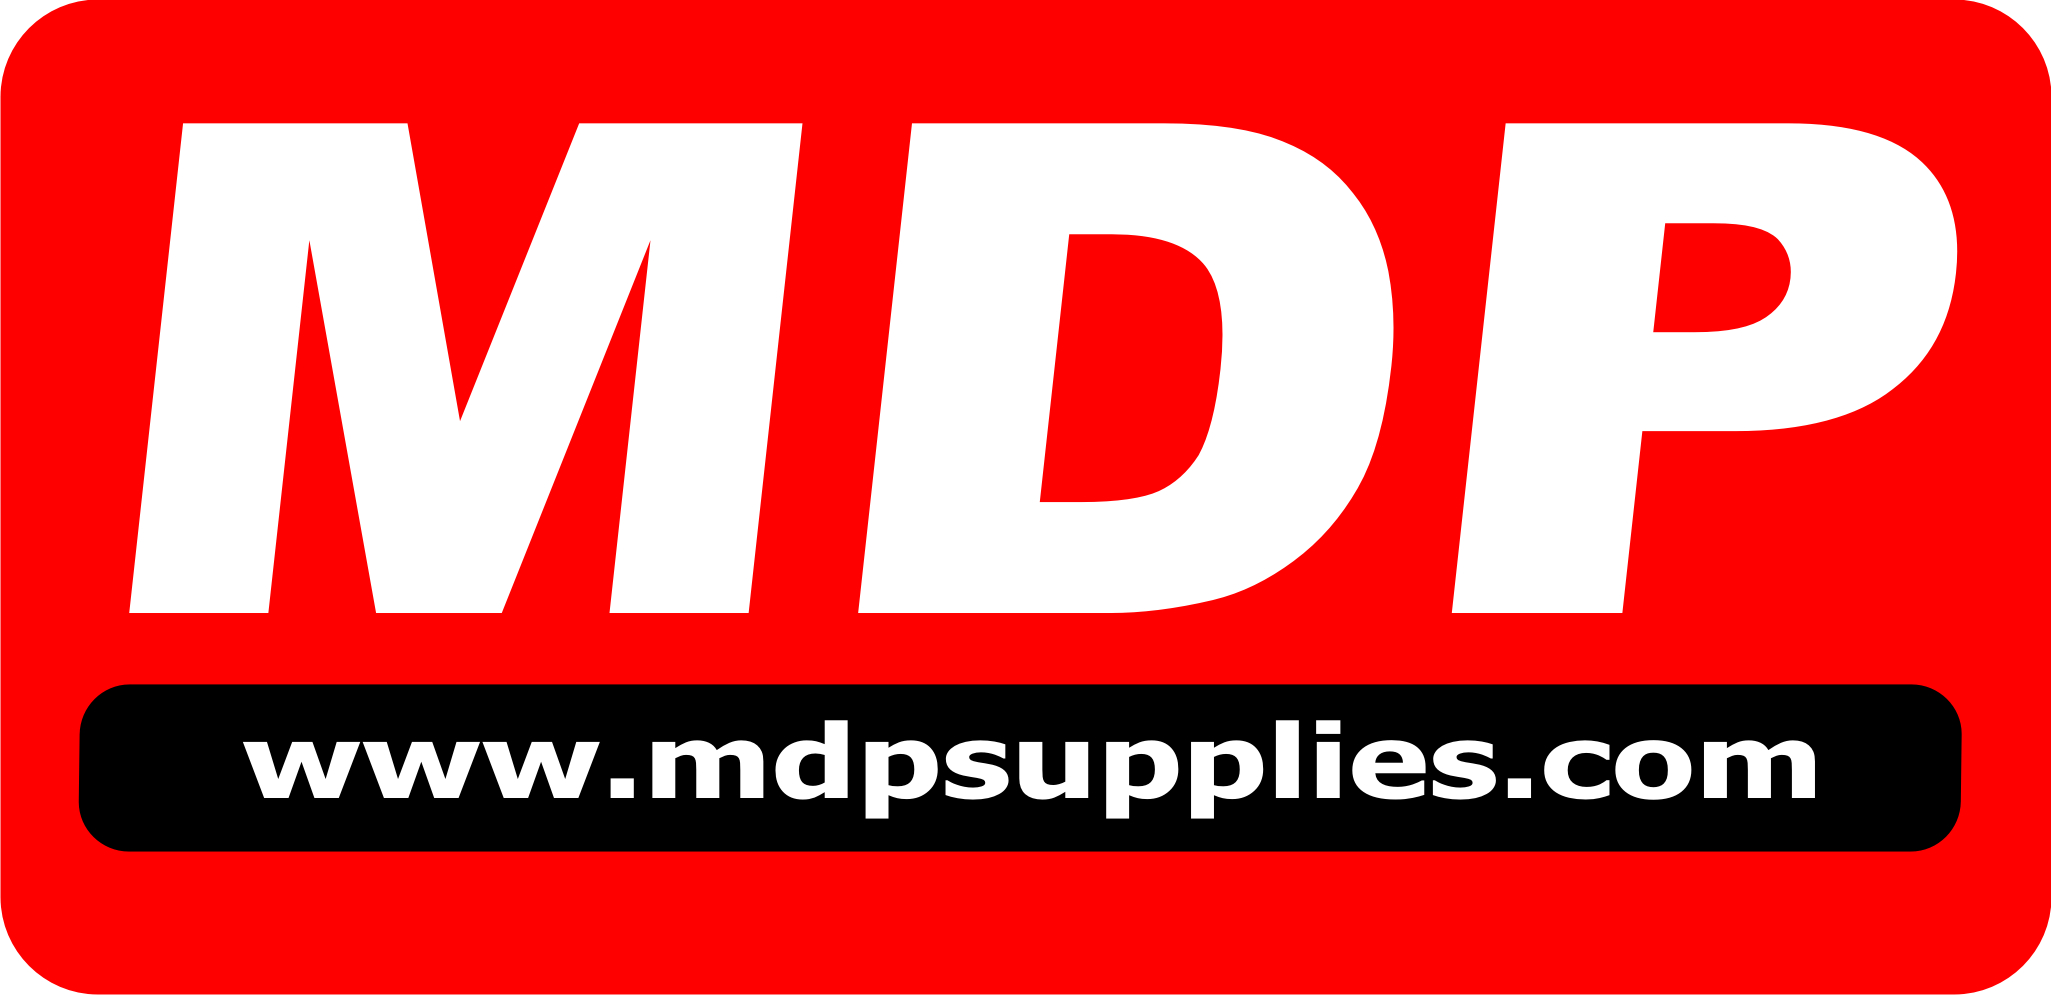 MDP Supplies (Northern Ireland and Republic of Ireland)